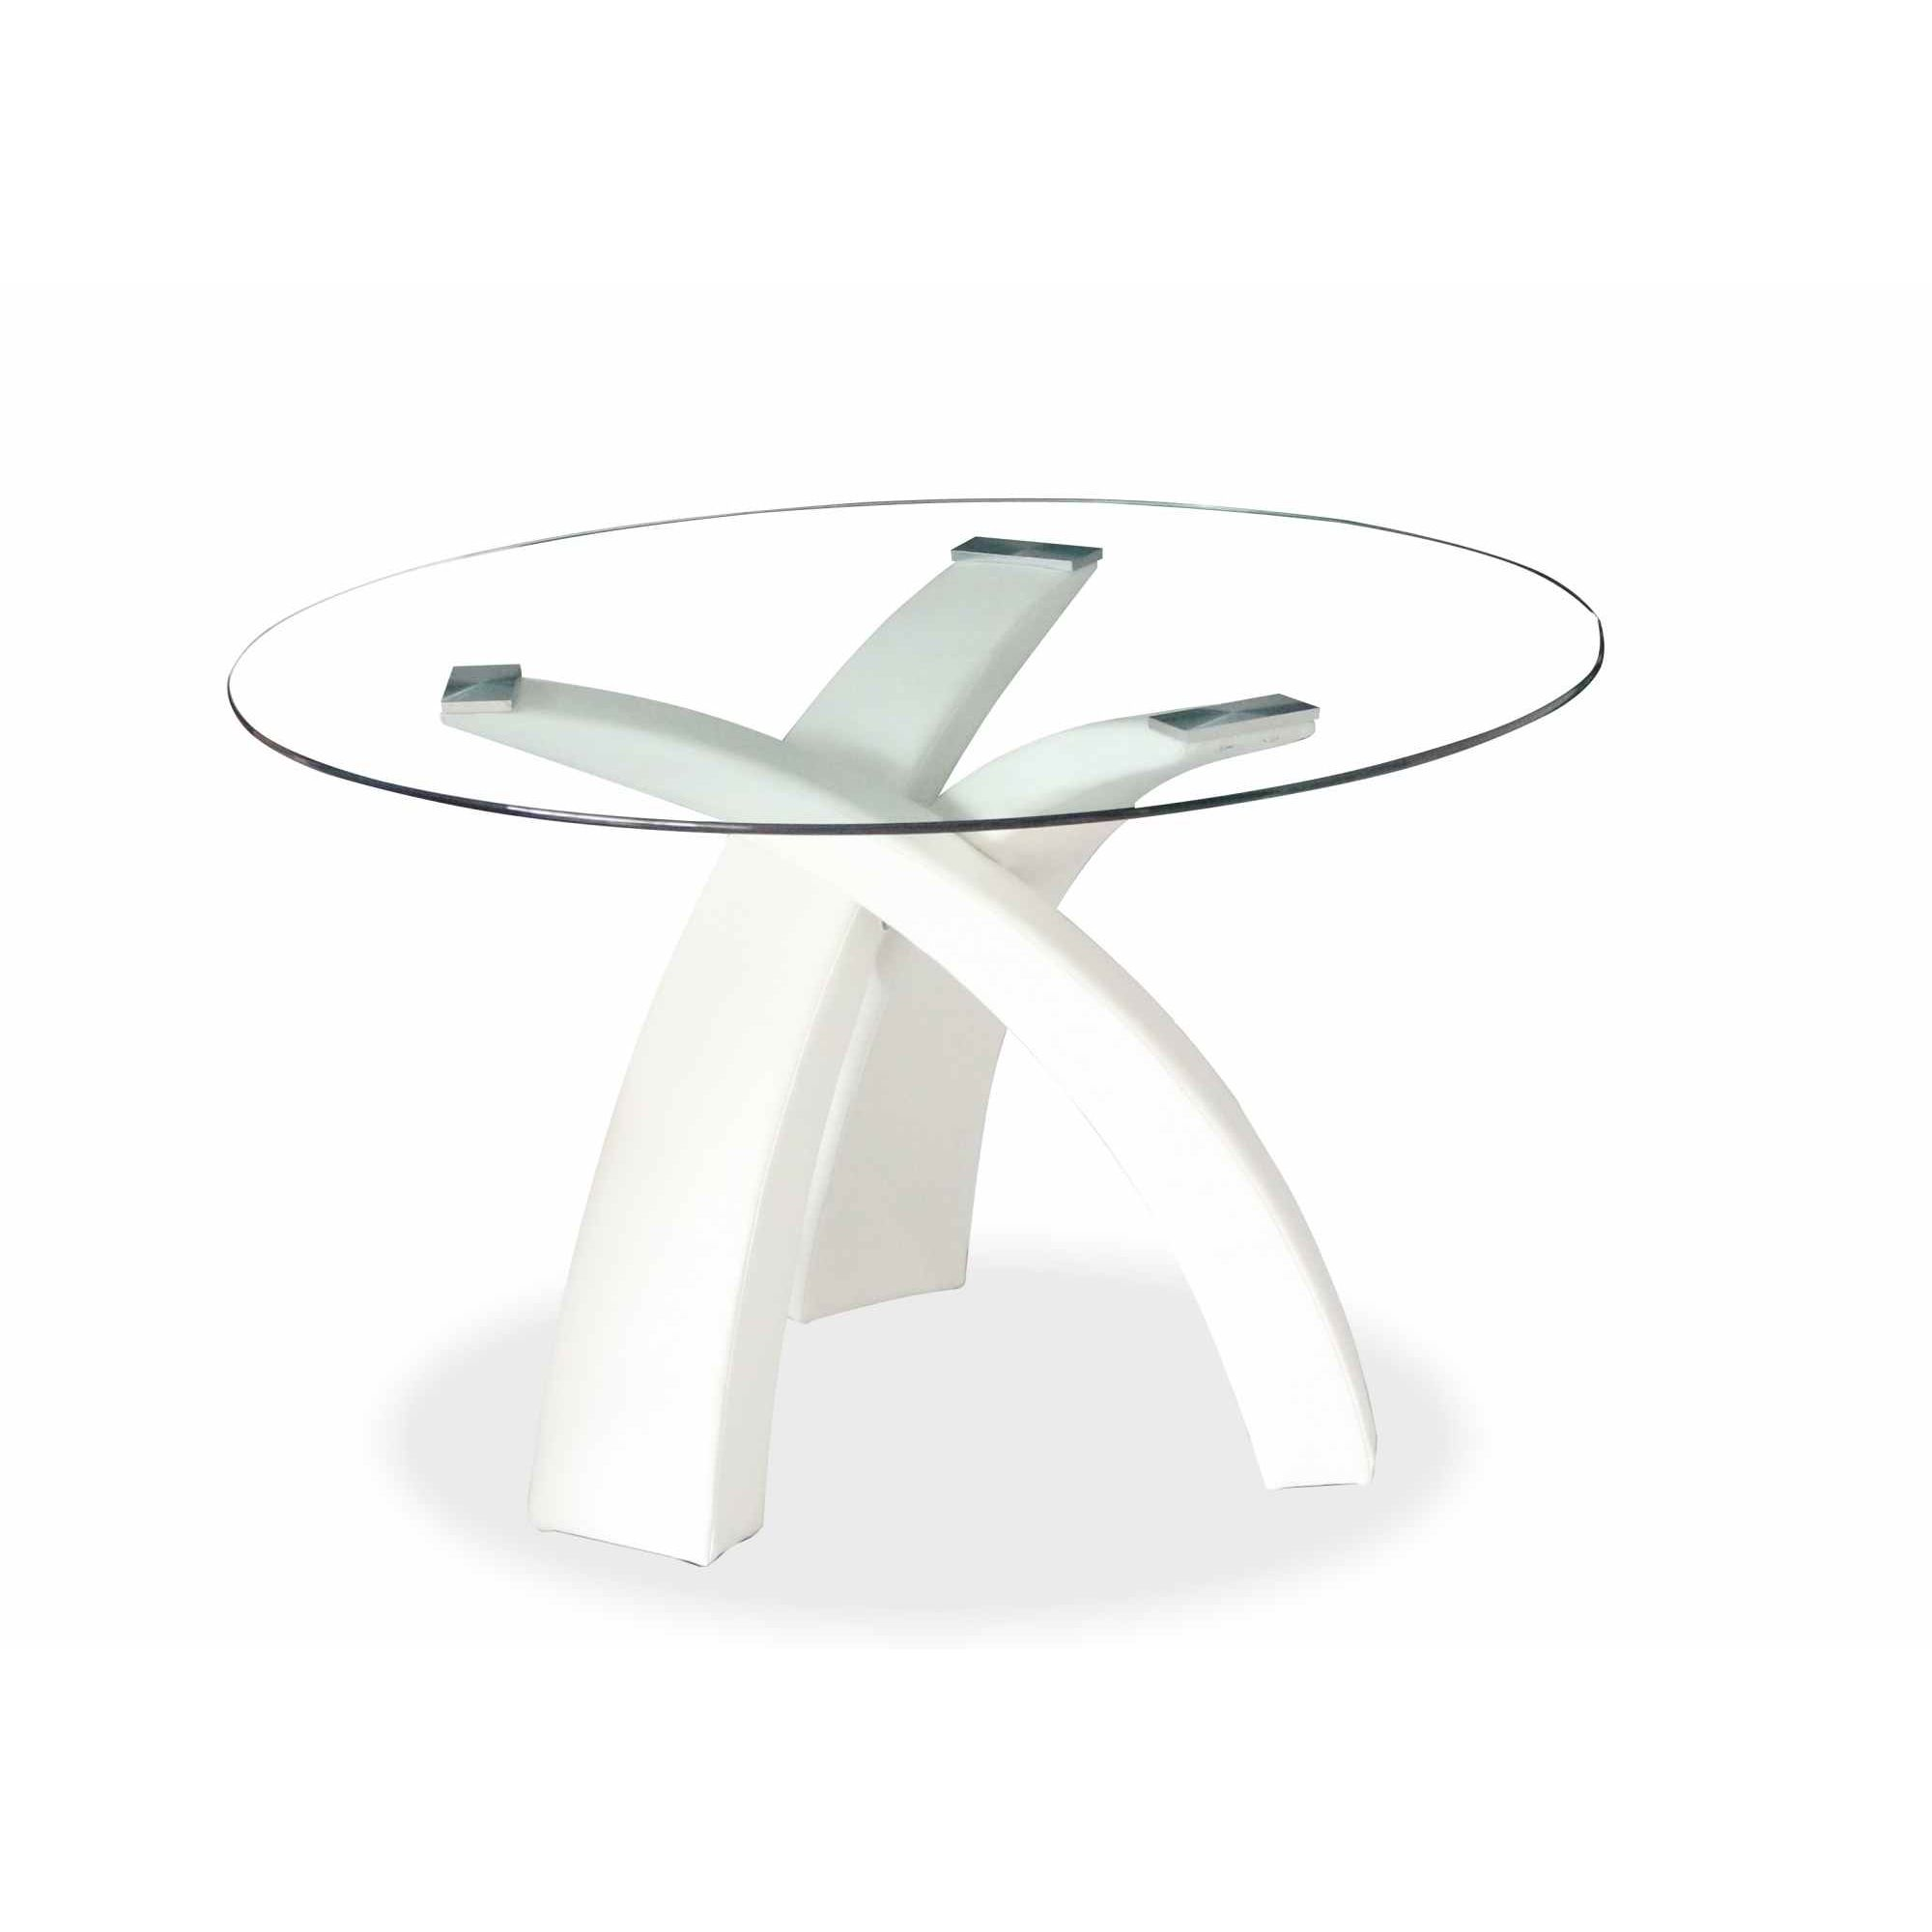 Emejing table a manger blanche ronde contemporary awesome interior home satellite - Table ronde extensible blanche ...